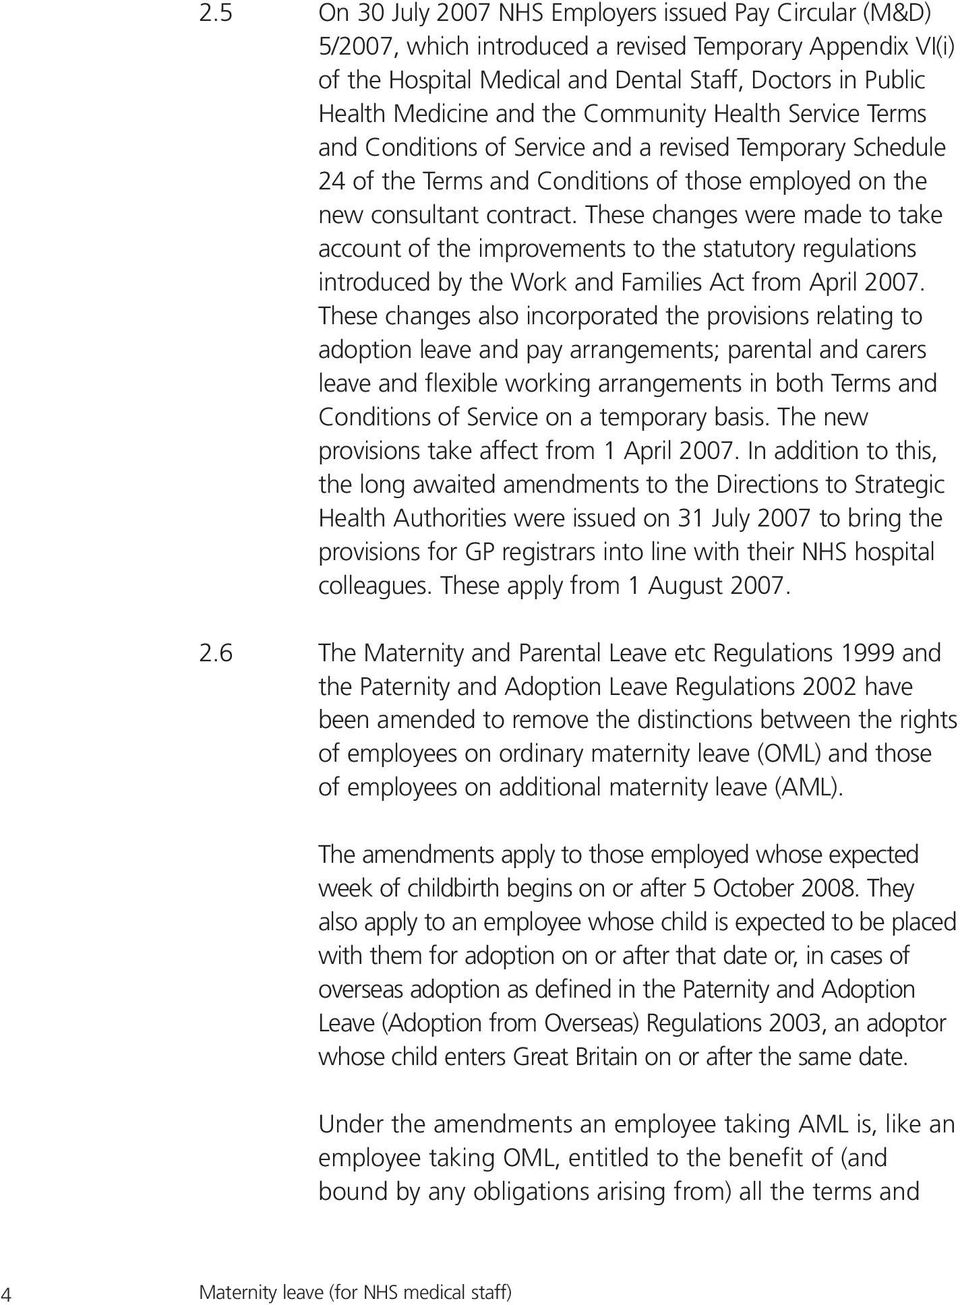 These changes were made to take account of the improvements to the statutory regulations introduced by the Work and Families Act from April 2007.